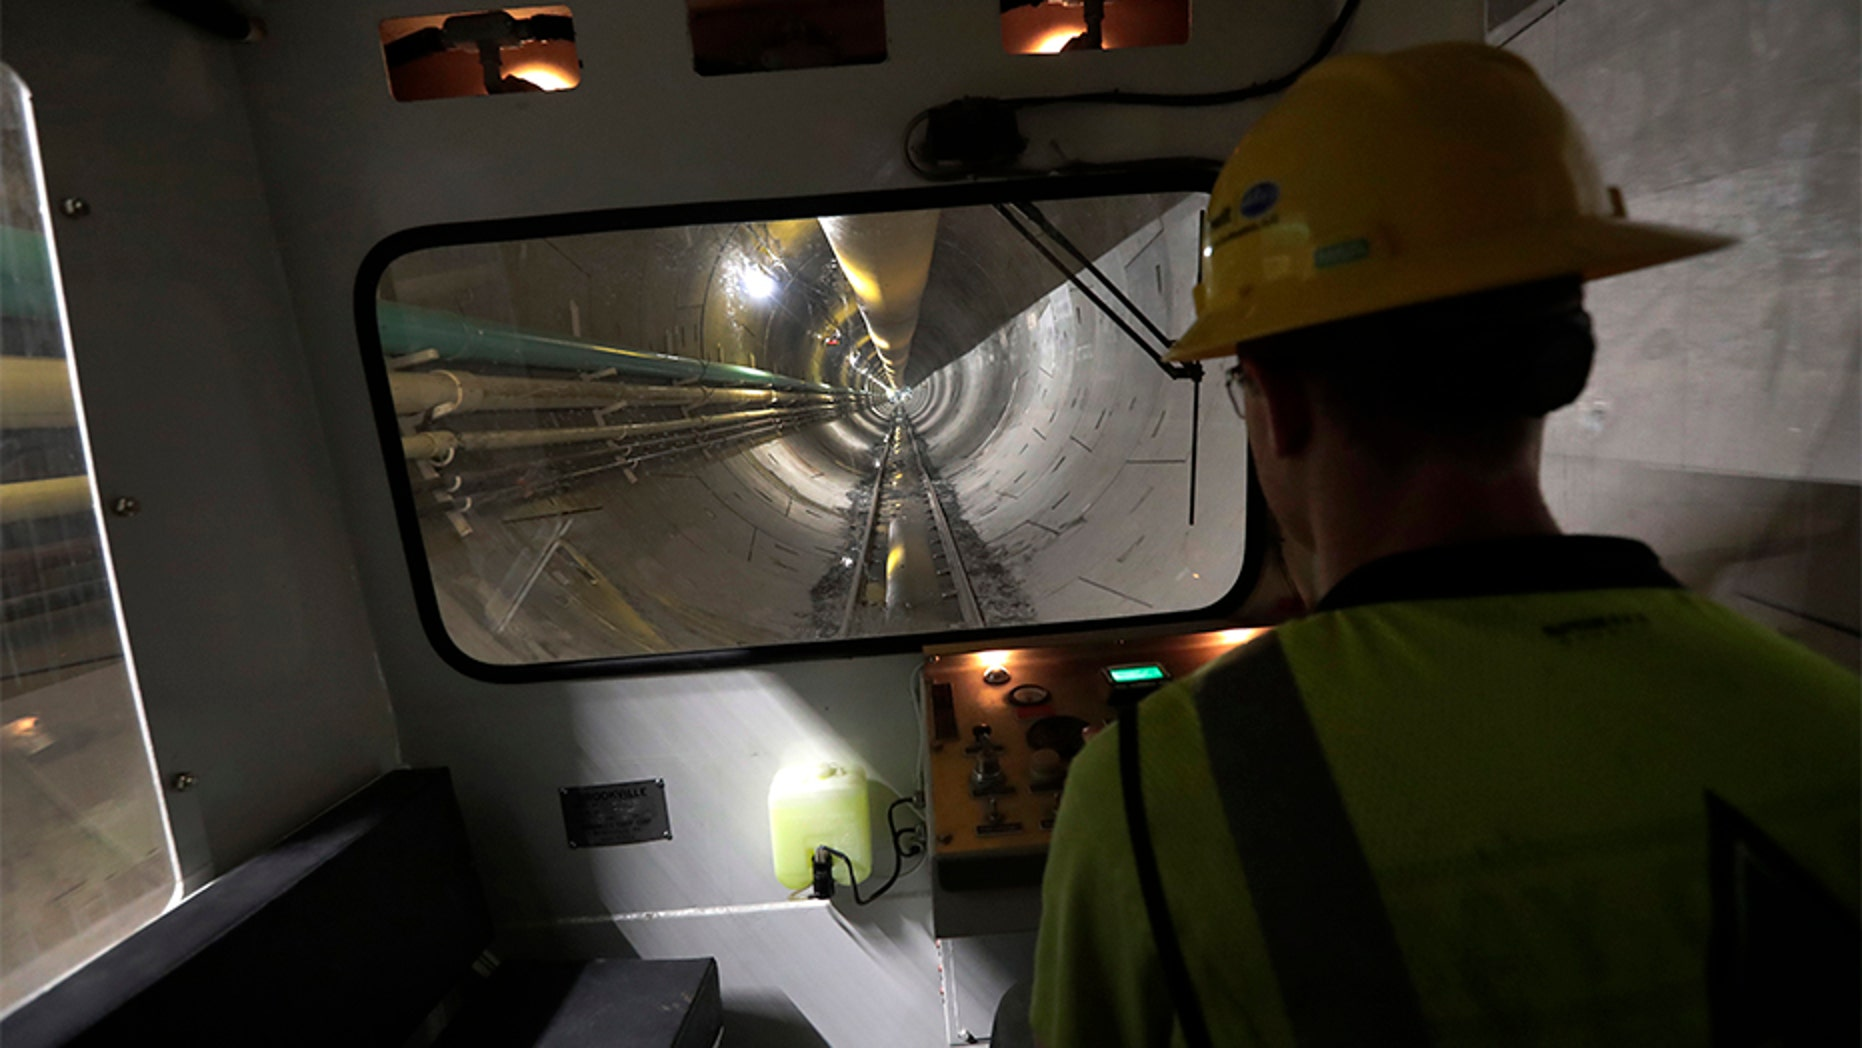 On May 16, operator Andrew Reisinger drives a personnel shuttle along a small gauge rail line inside a 2.5 - mile bypass tunnel being dug for the Delaware Aqueduct, in Marlboro, N.Y.